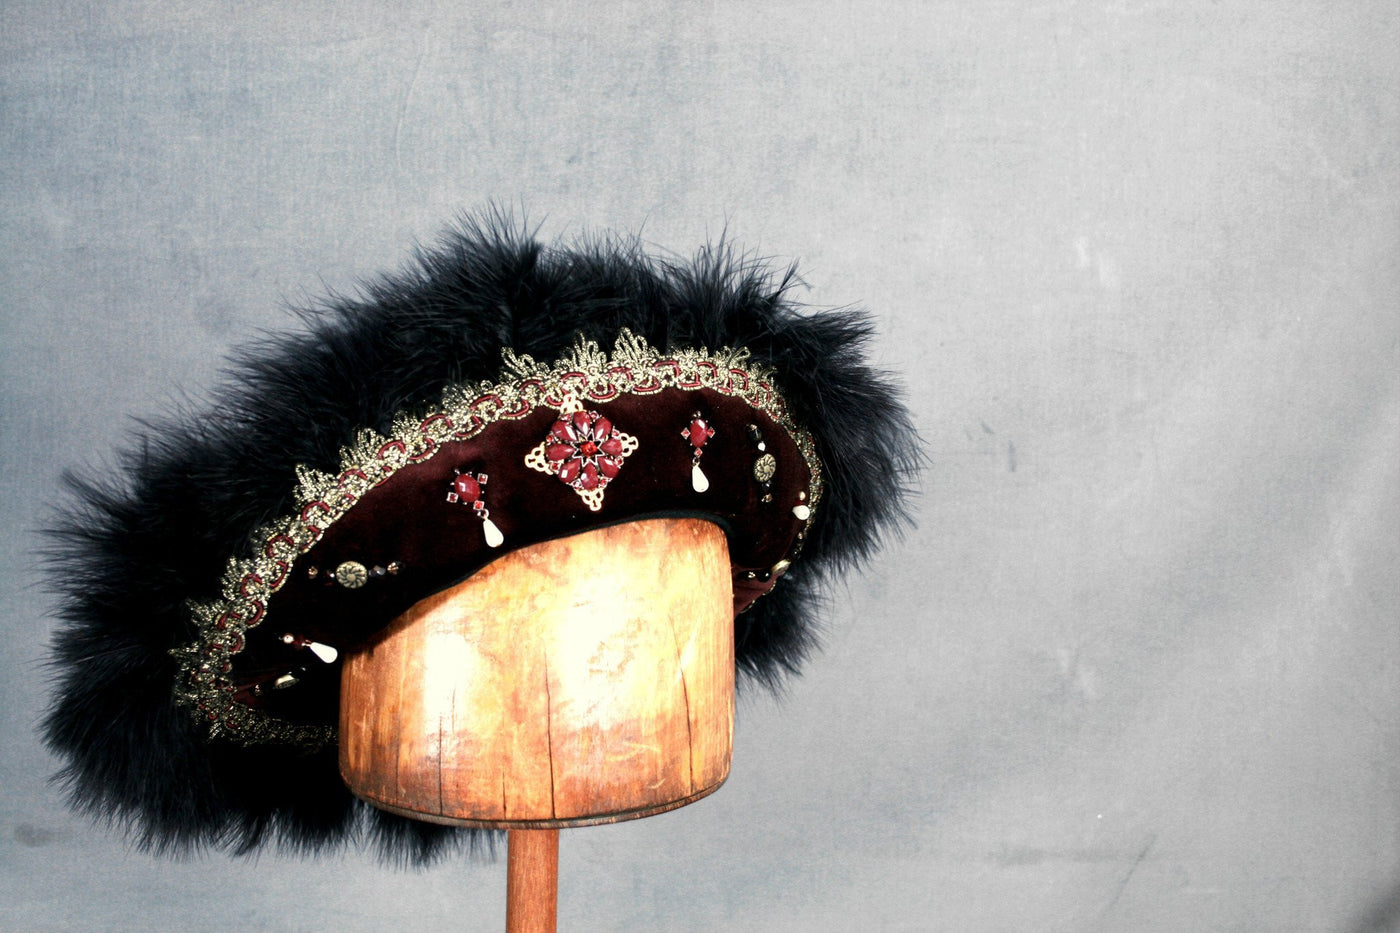 Henry VIII Flat Cap - Merlot /Black Marabou / Gold Trim / Jewels - Tall Toad